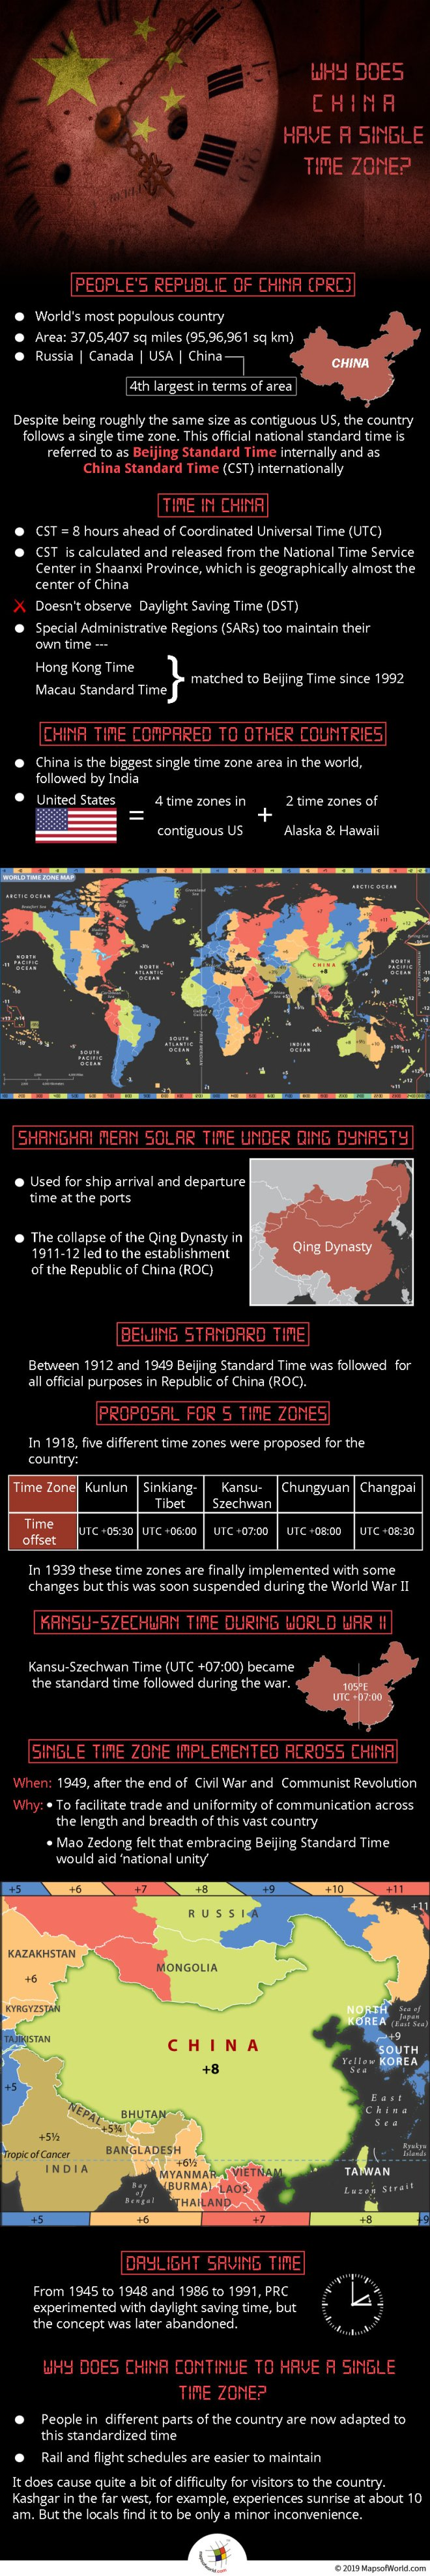 Infographic - Why Does China Have a Single Time Zone?